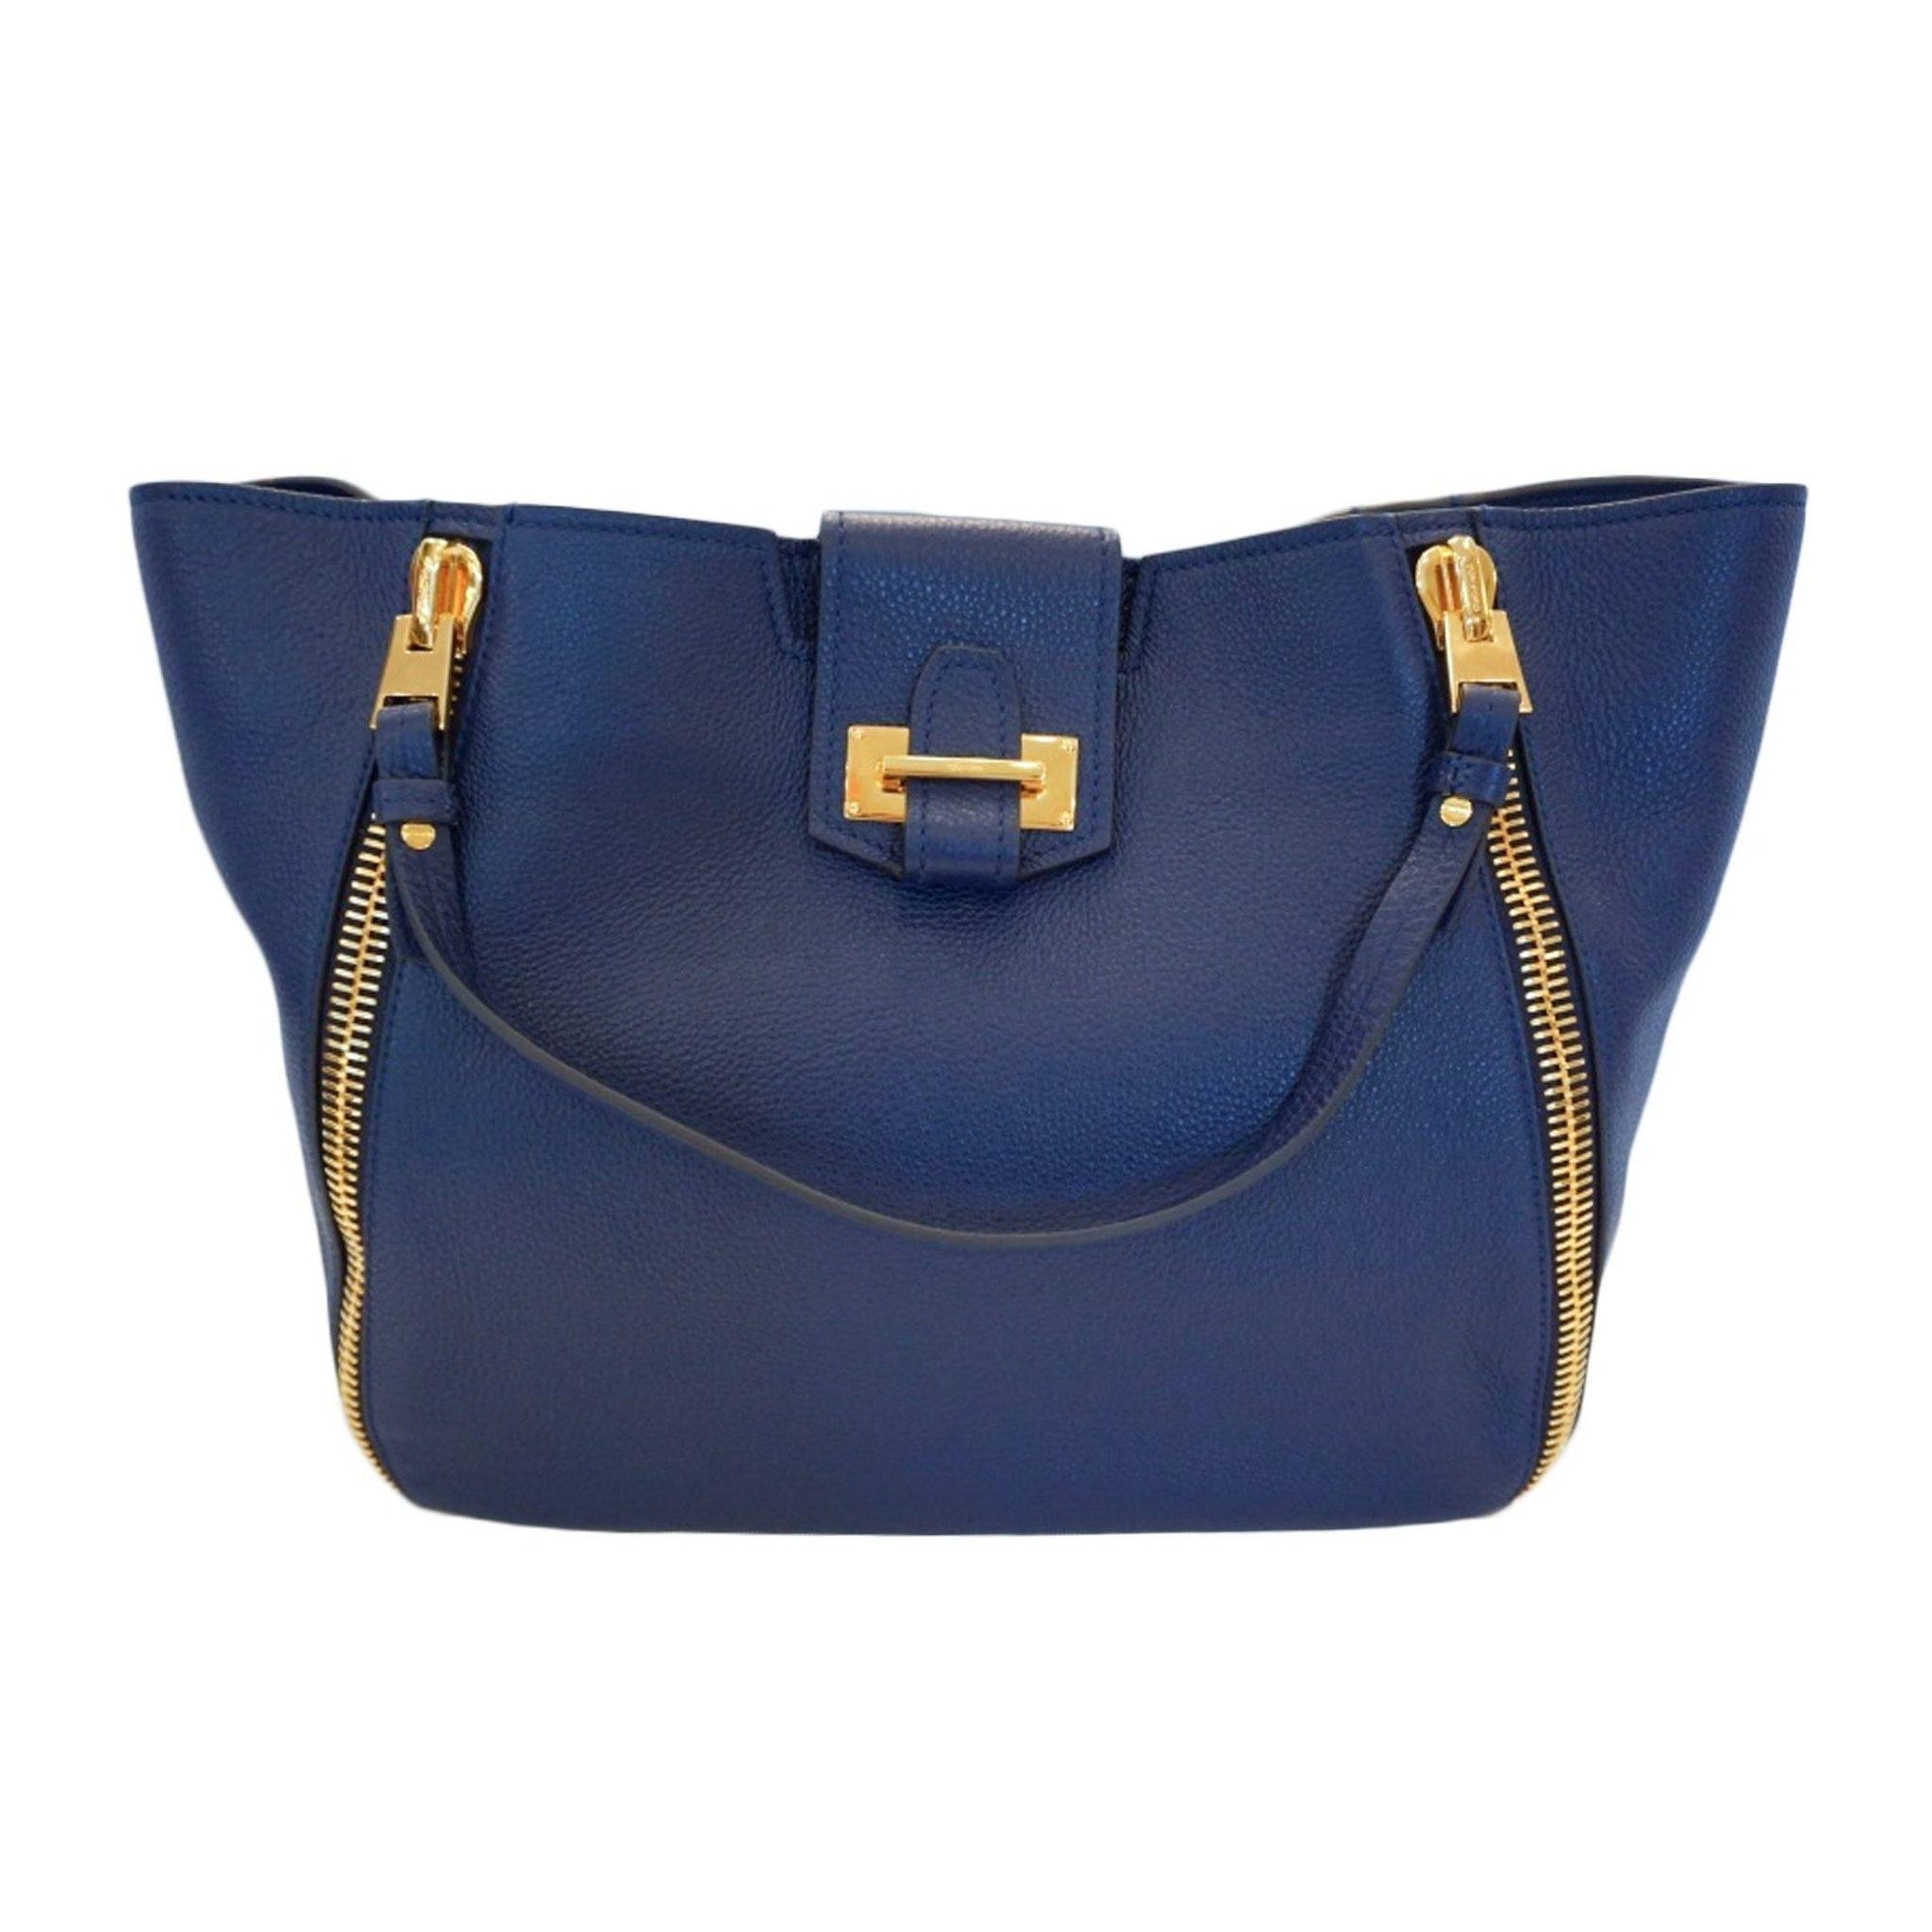 Tom Ford women's Sedgwick Tote Handbag Royal Blue Leather Handbag L0680T